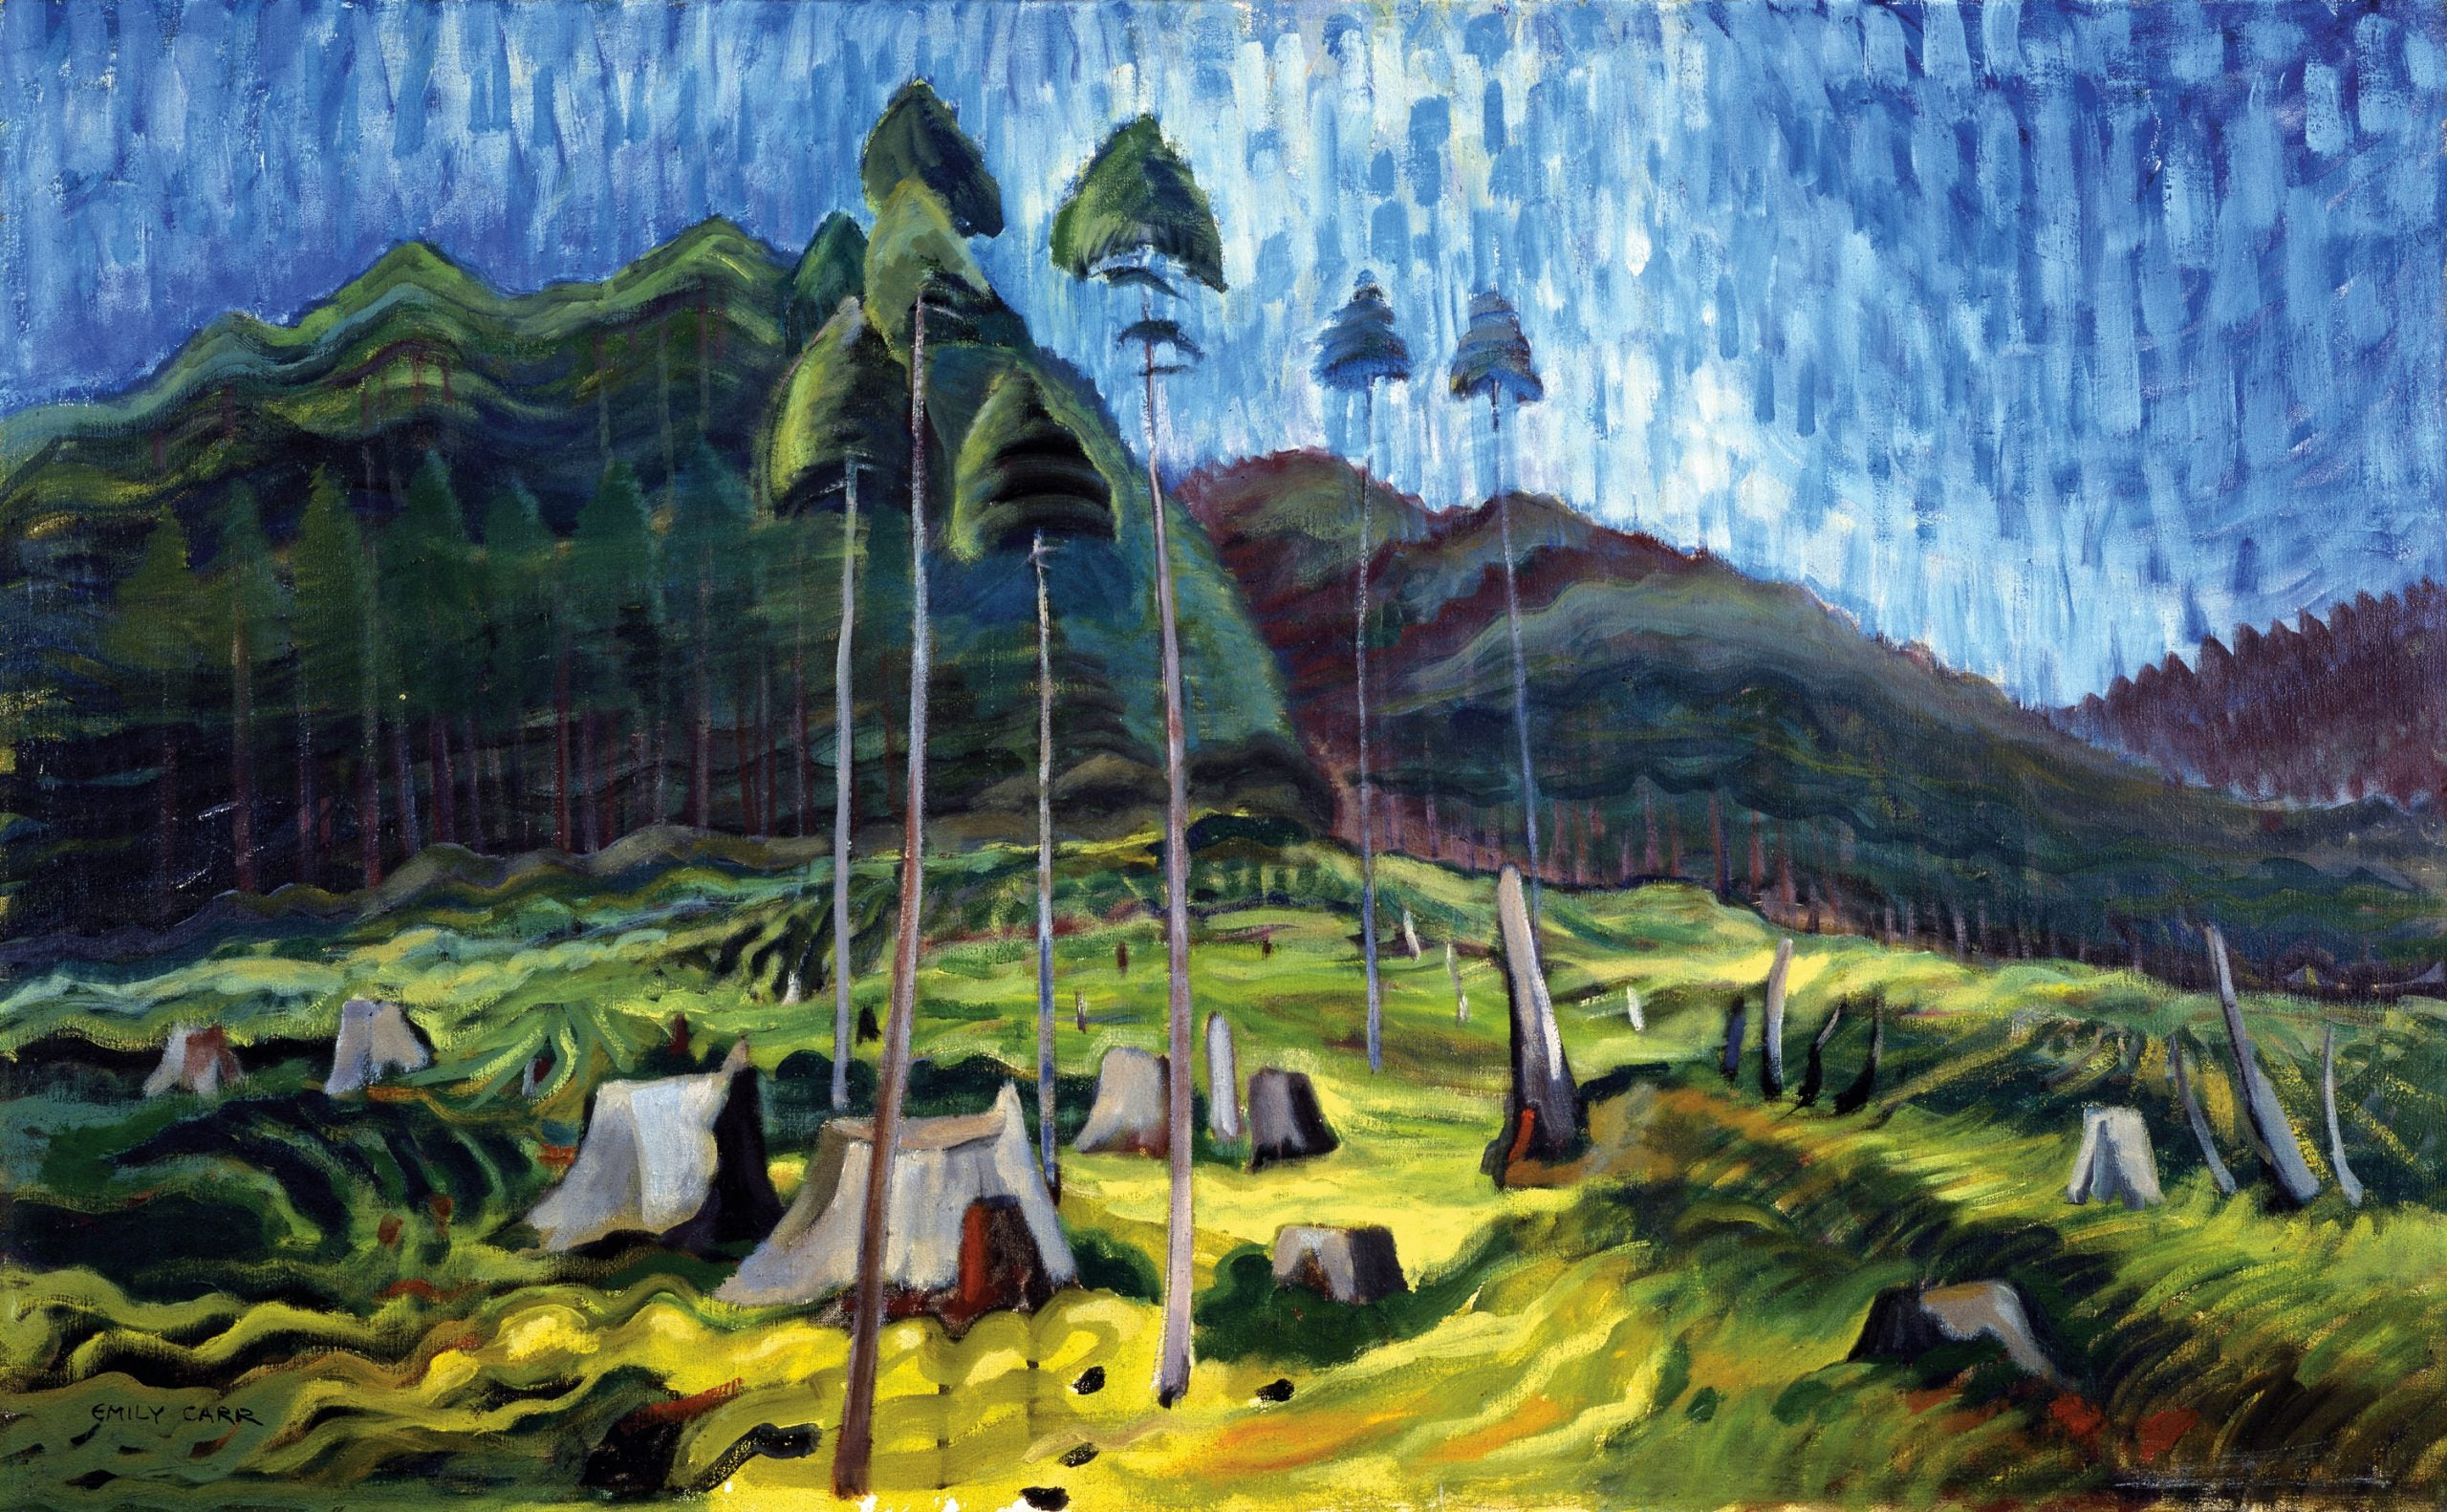 The greats outdoors: Emily Carr's modernist landscapes